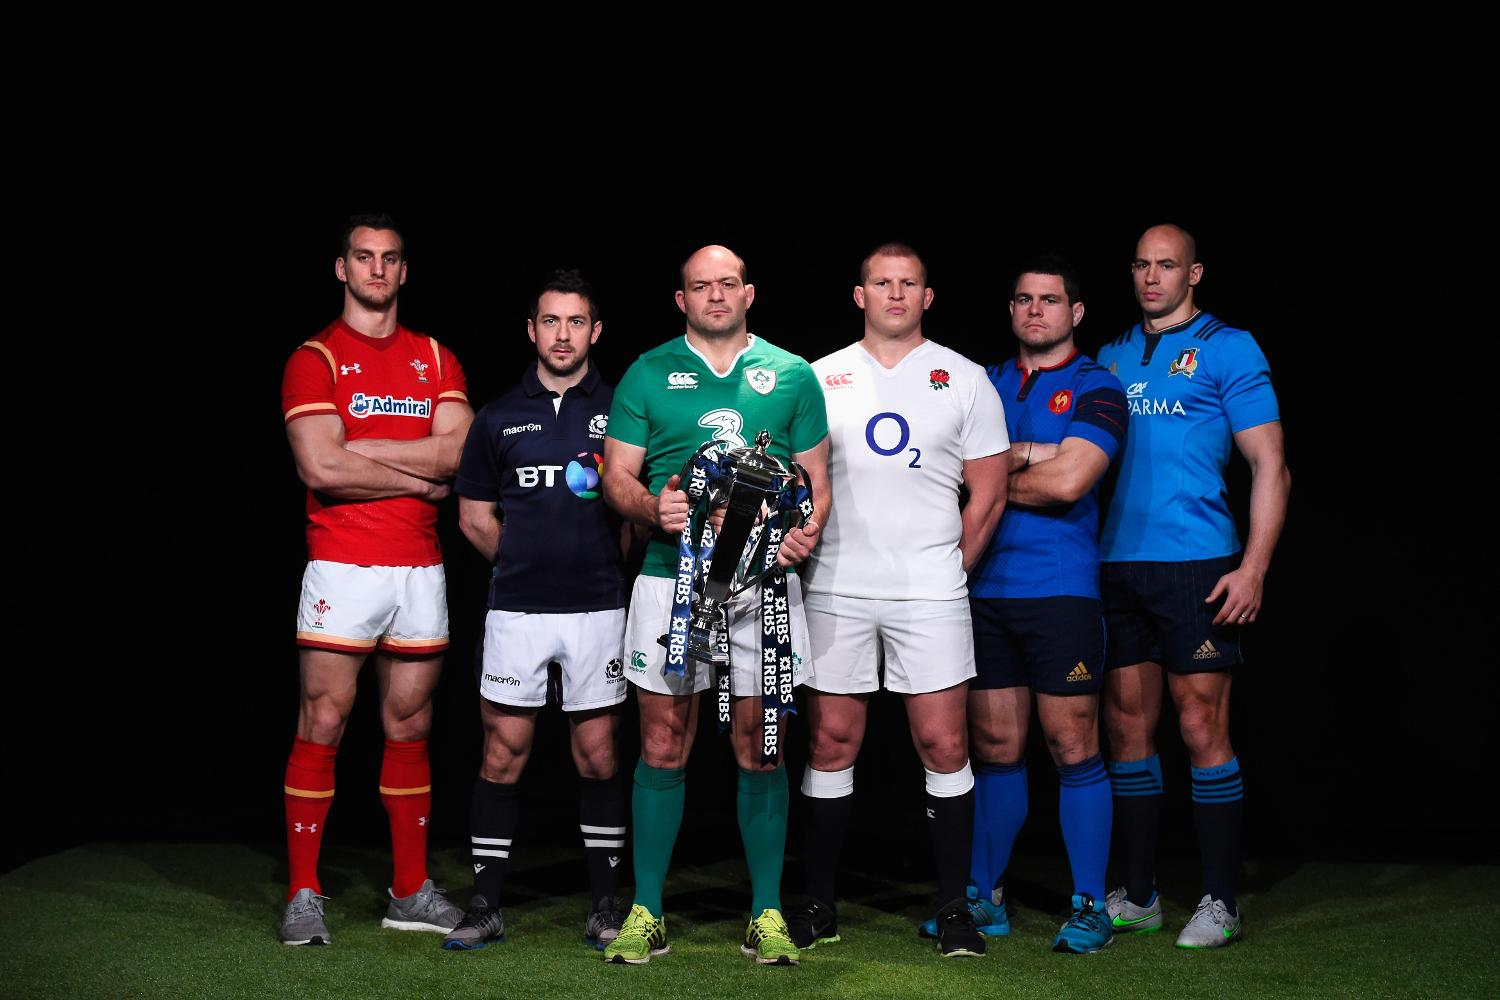 Will this rank among the best Six Nations ever? - Rugby